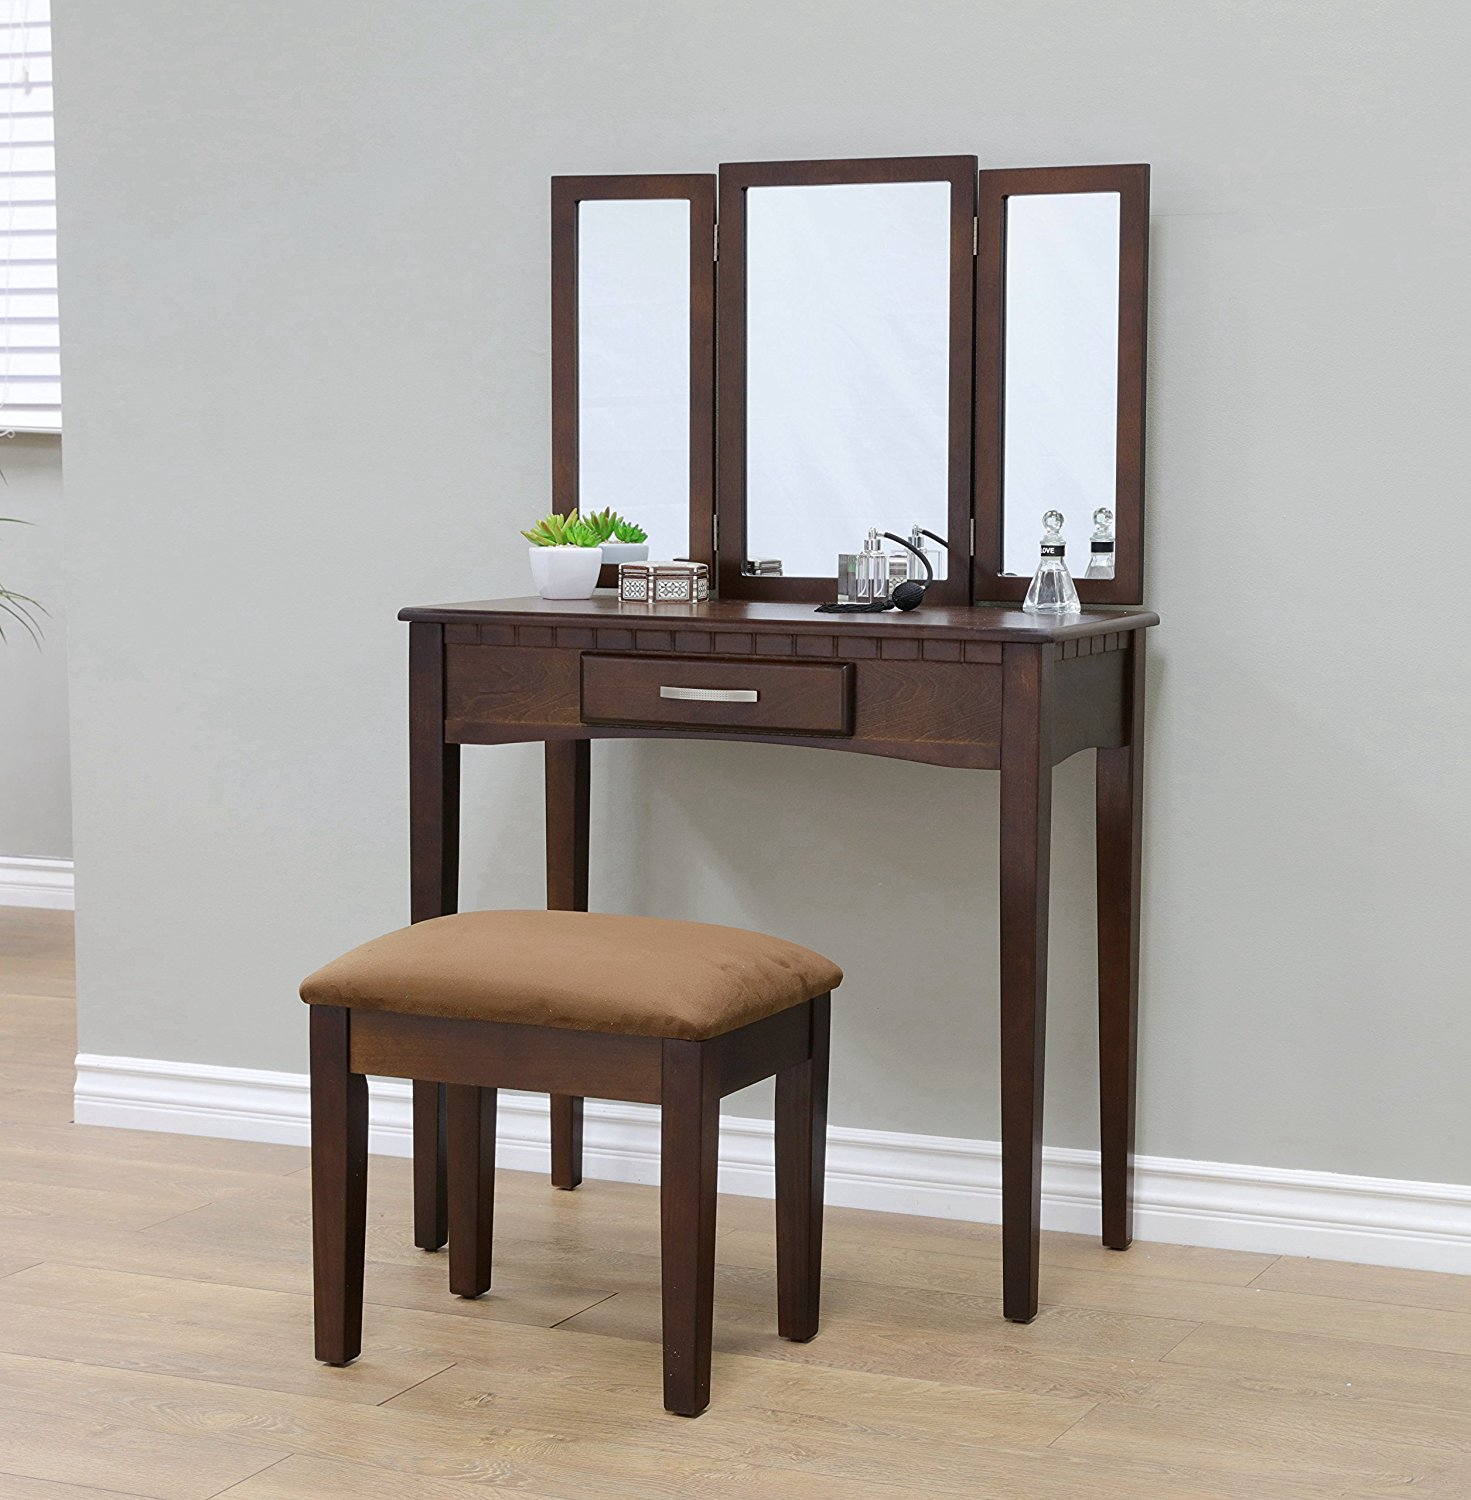 W-HY-0613 French style Home Furnishing Stool Set and Vanity dressing table